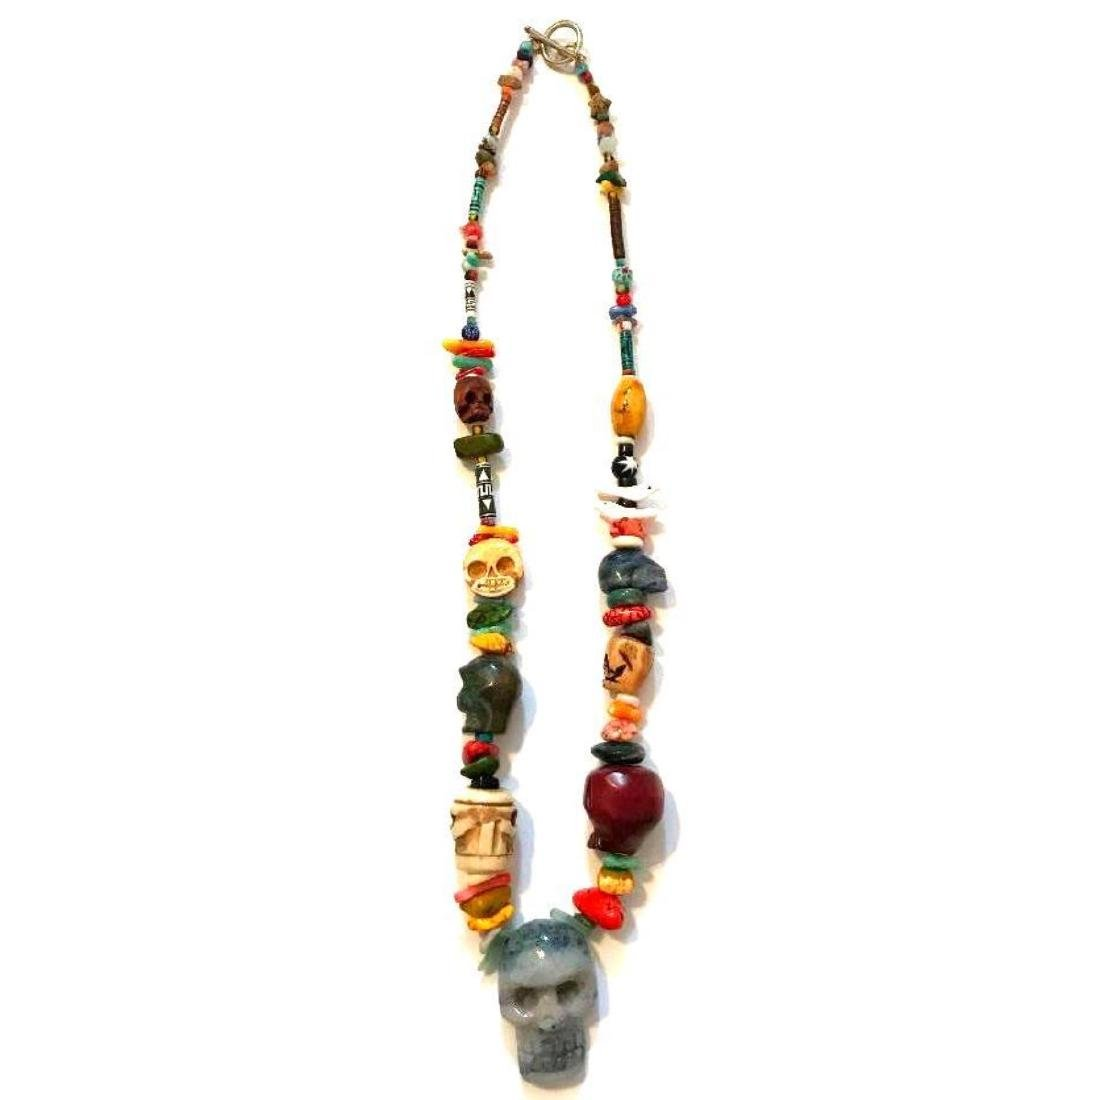 Hand-carved Artisan Skull Beads Necklace - 2